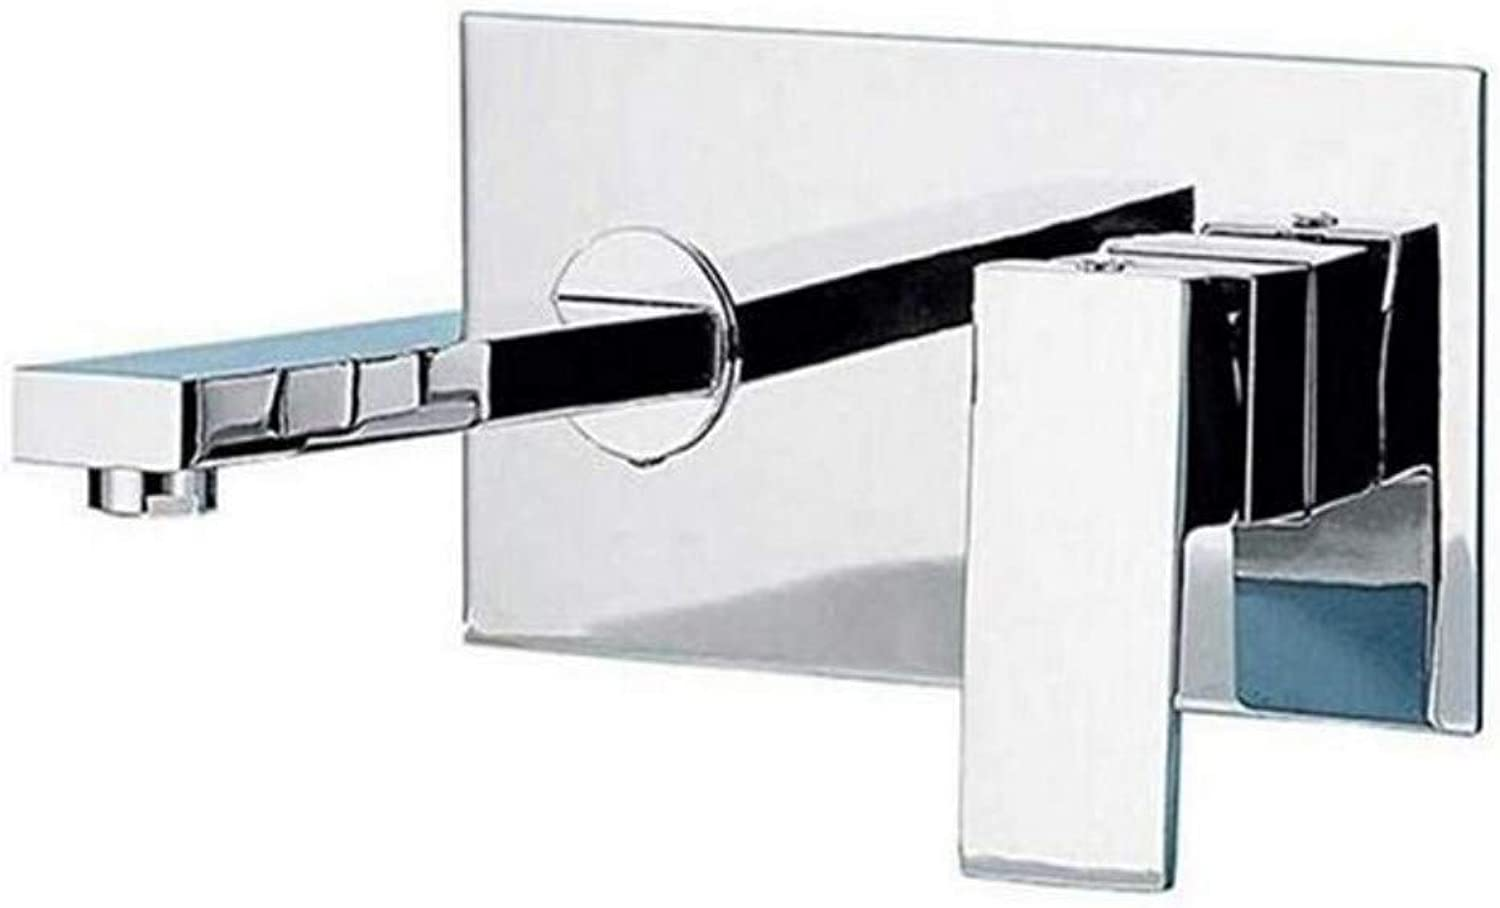 Modern Double Basin Sink Hot and Cold Water Faucettaps Concealed Basin Mixer Wall-Mounted Hot and Cold Water Faucet Pre-Embedded